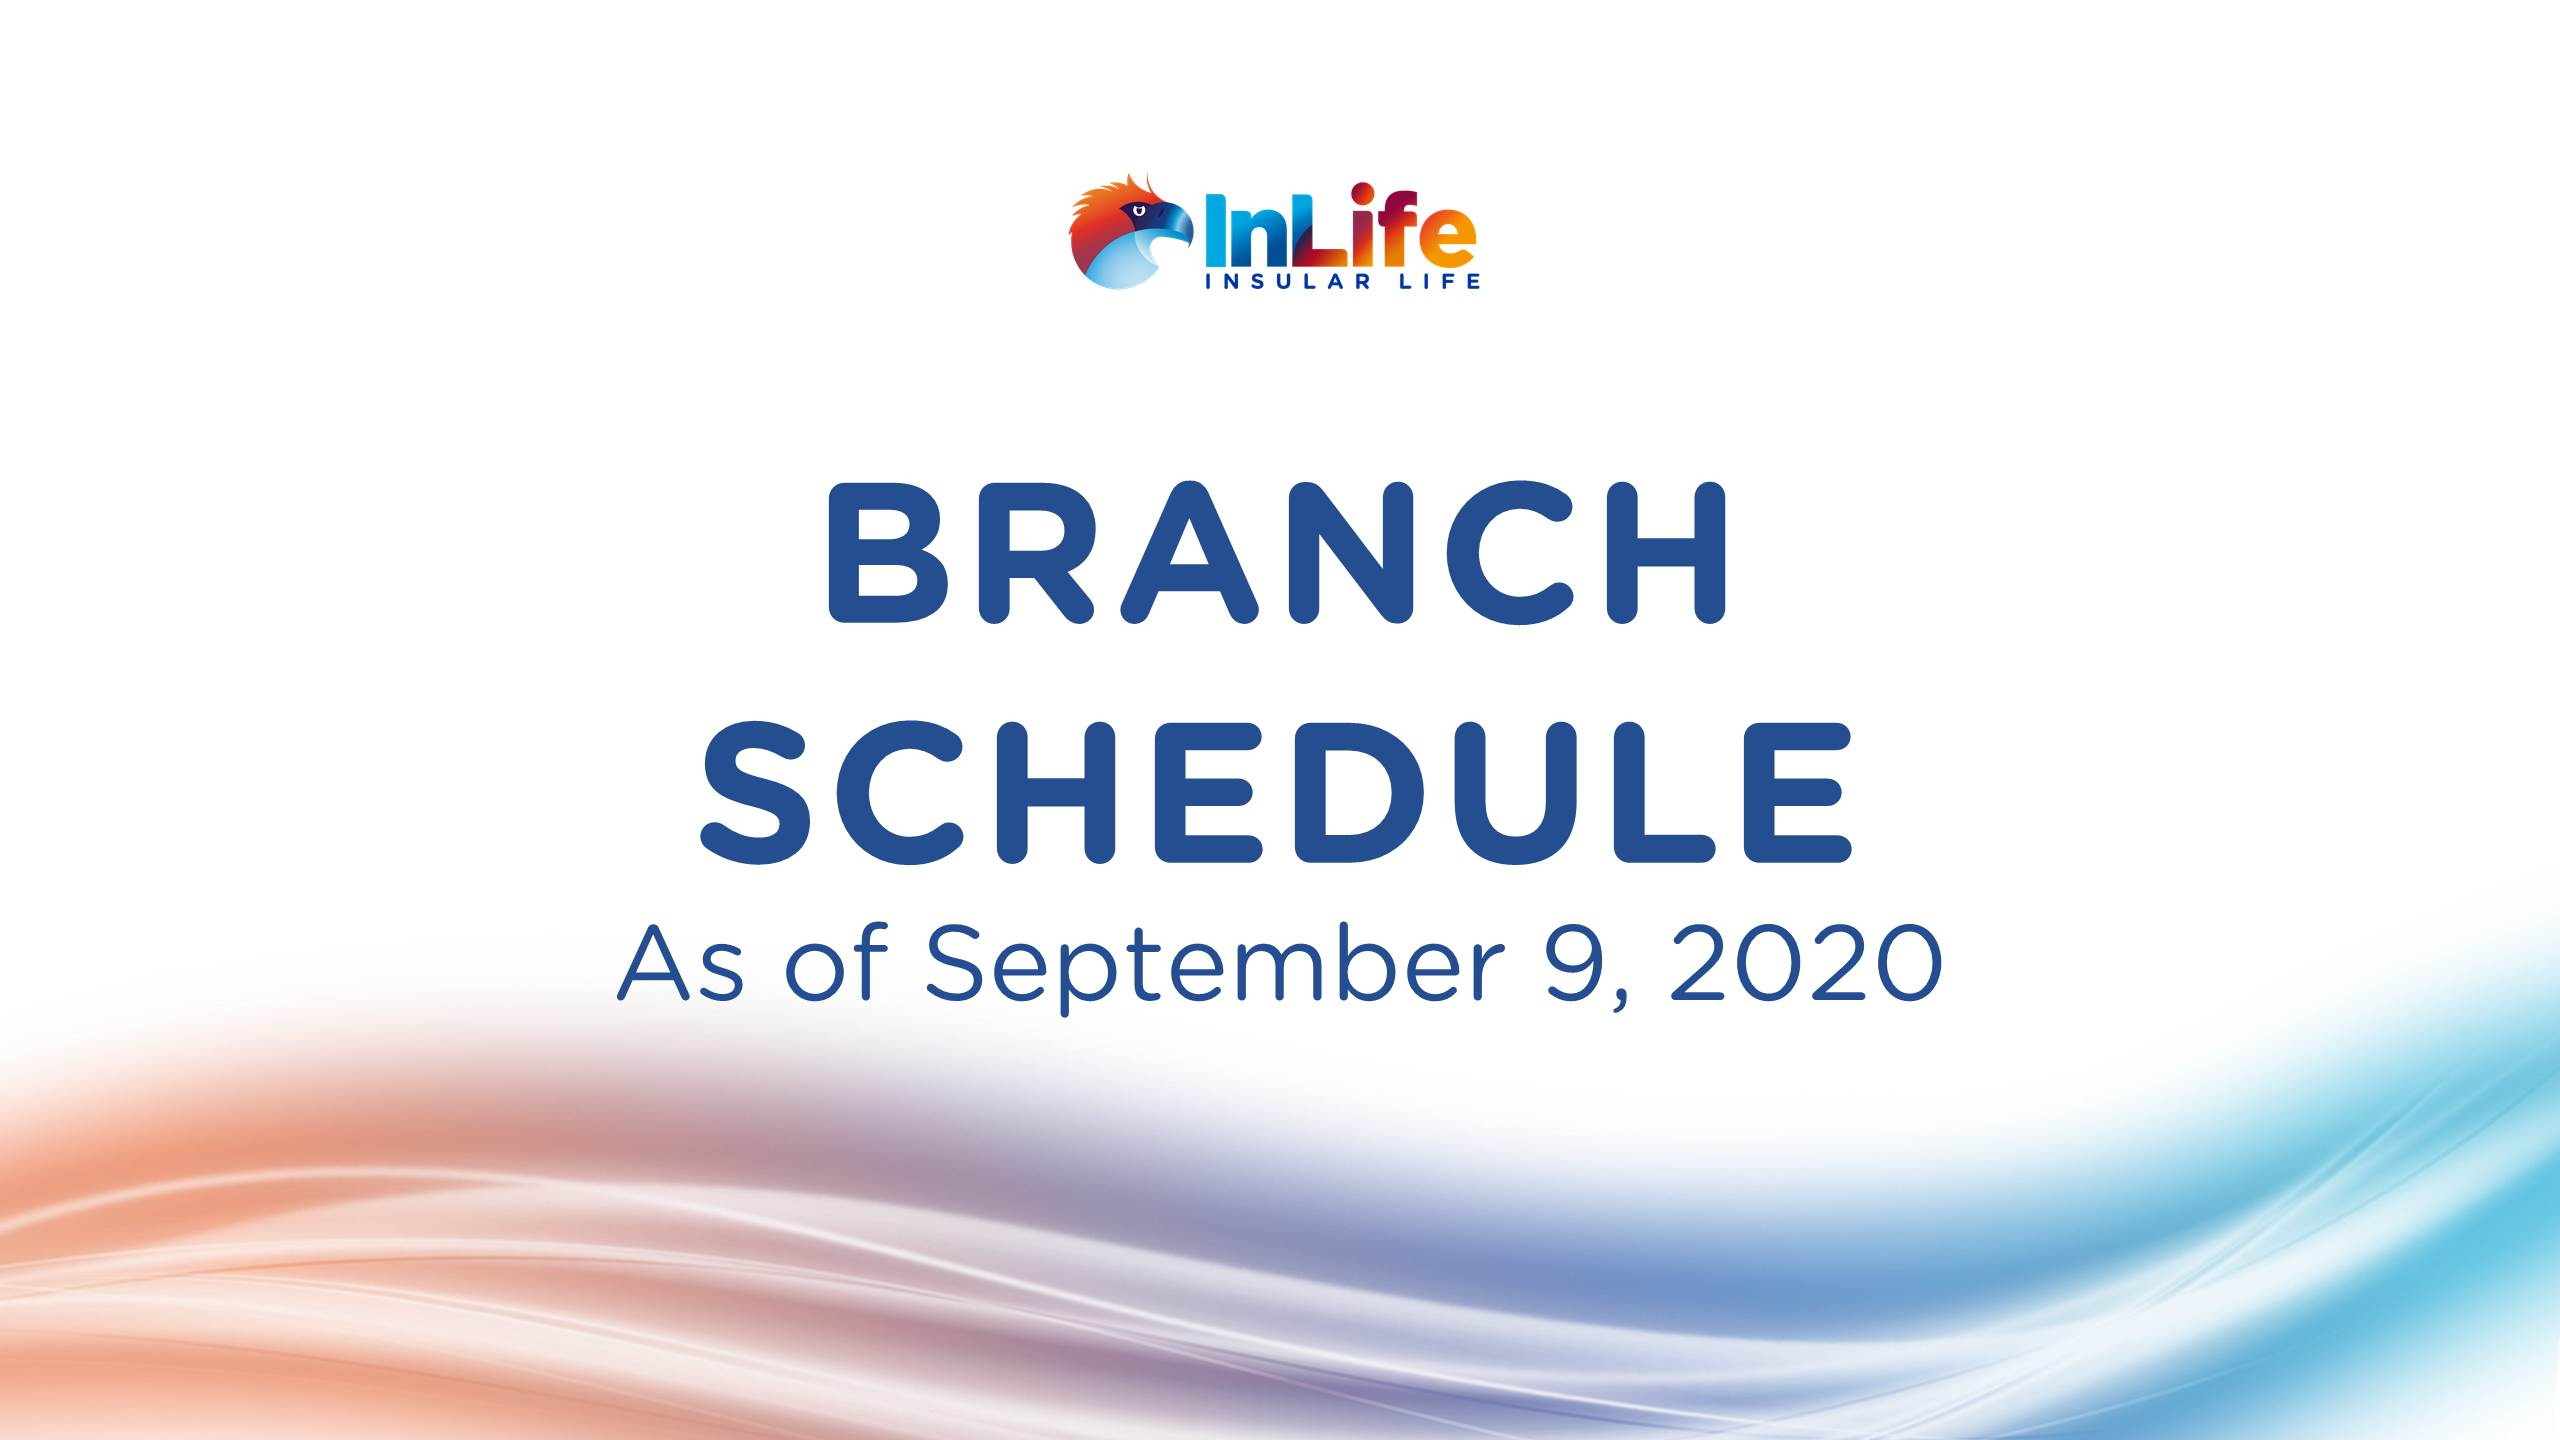 InLife Branch Schedule Starting September 9, 2020